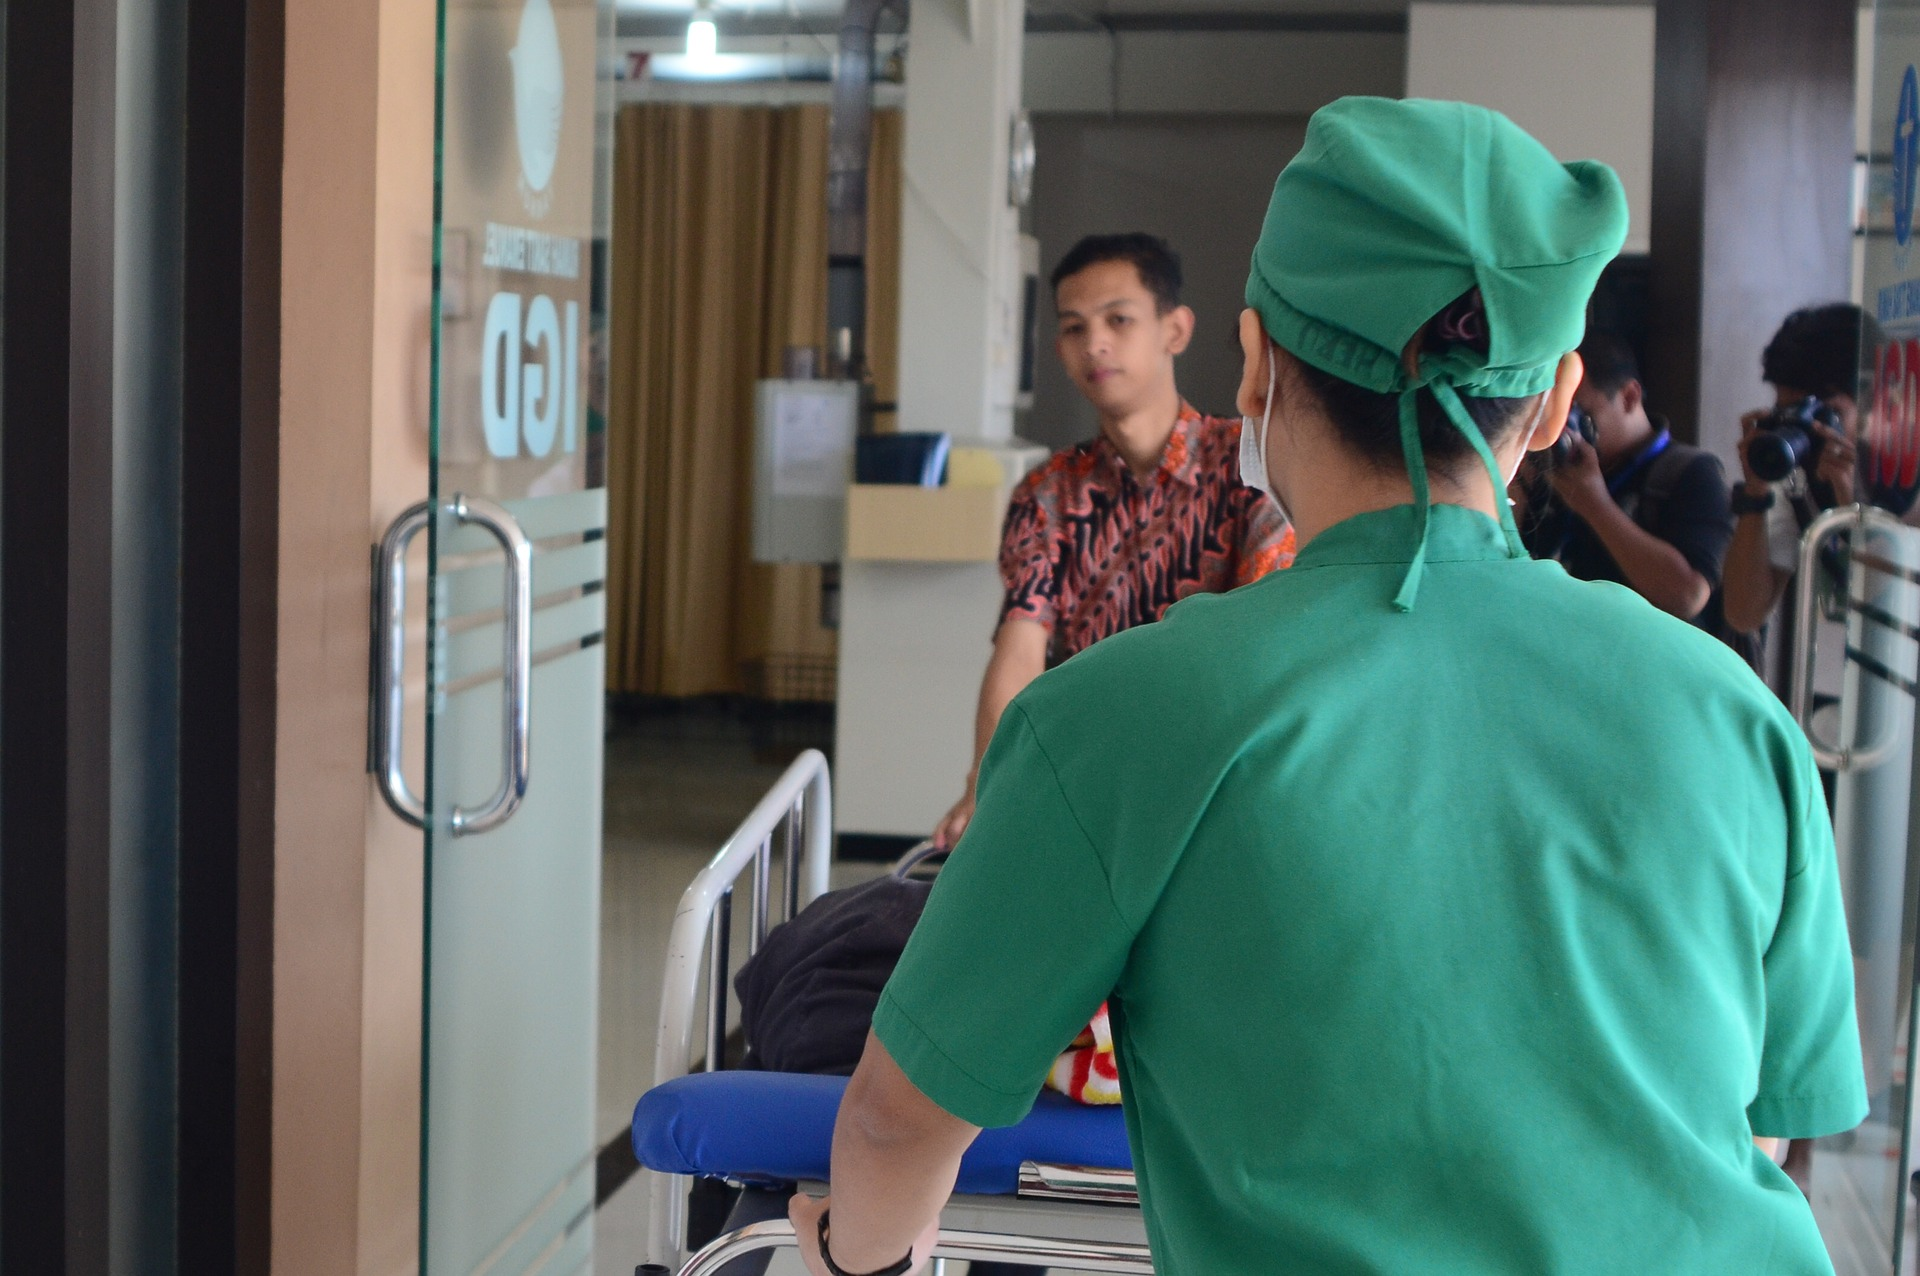 A patient is wheeled into the ICU by a doctor.